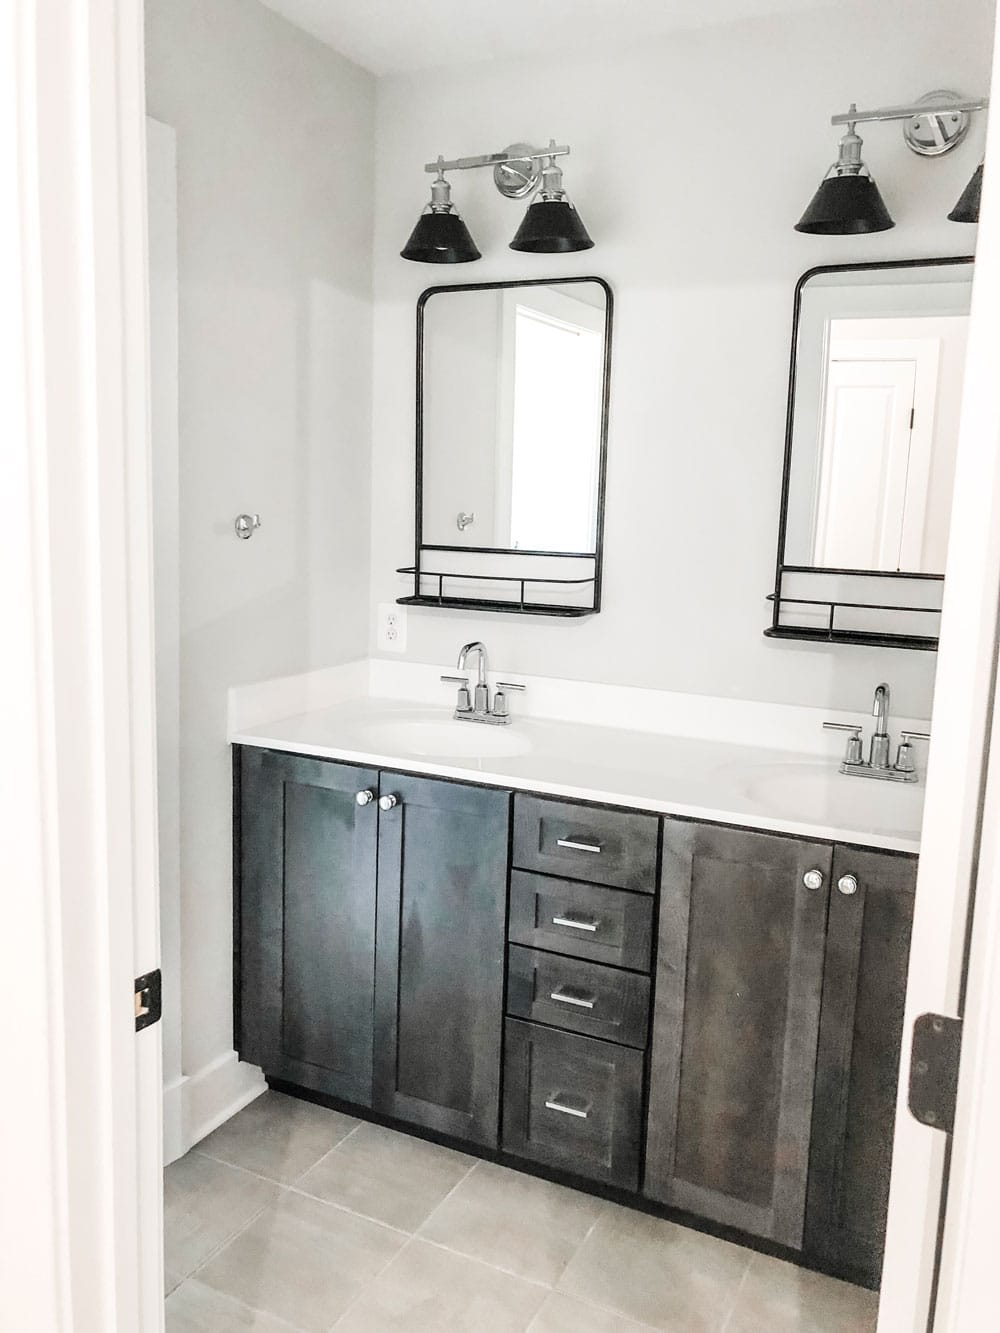 Custom home tour photos. This photo shows a double bath vanity. The bath cabinet is a dark wood grain and it has a solid white marble top. There are two black mirrors - one above each sink. There is also a light above each sink that is a two light fixture with black shades and chrome for the rest of the fixture. There are chrome handles and chrome faucets.